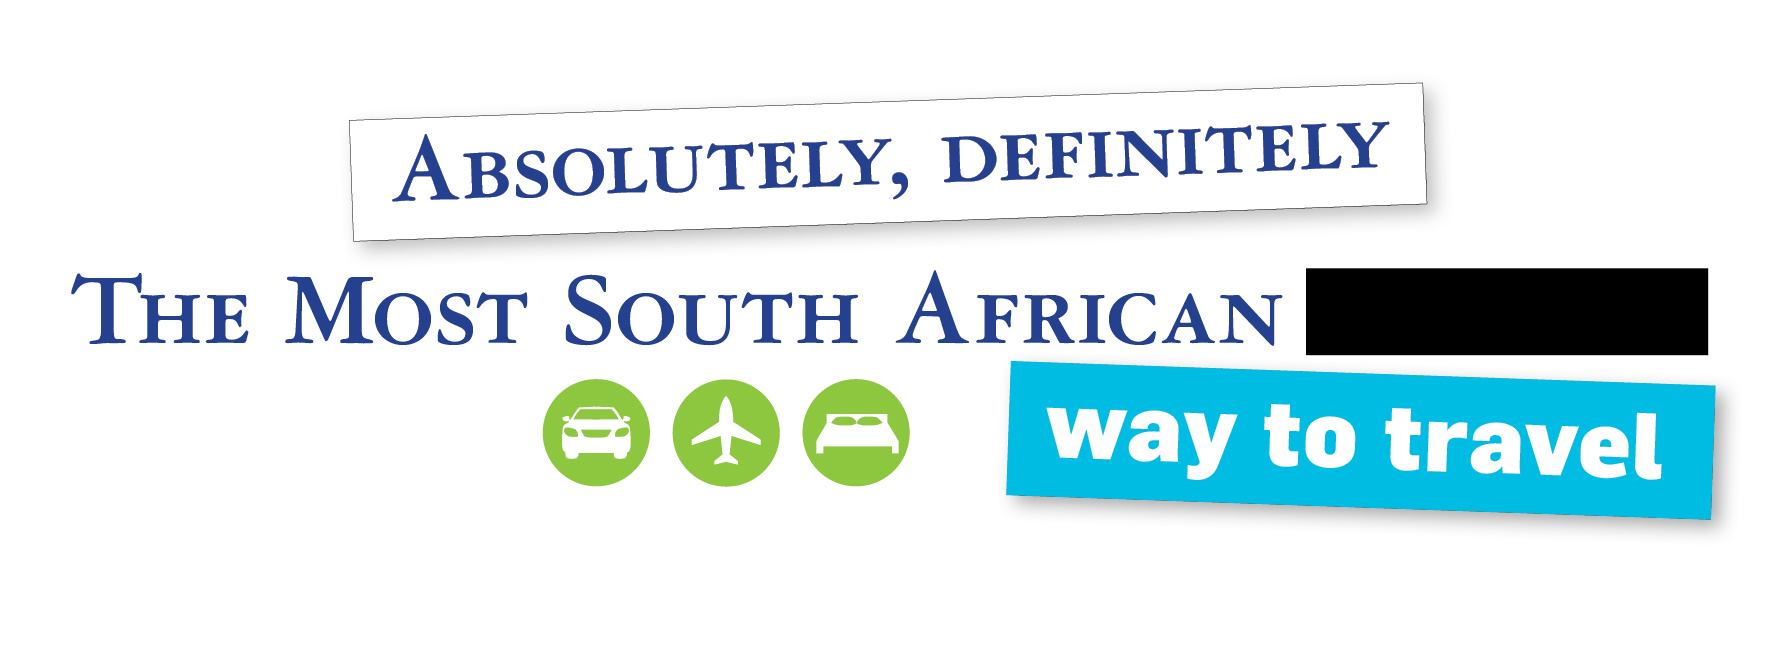 kulula humour funniest airline in the world most south african way to travel